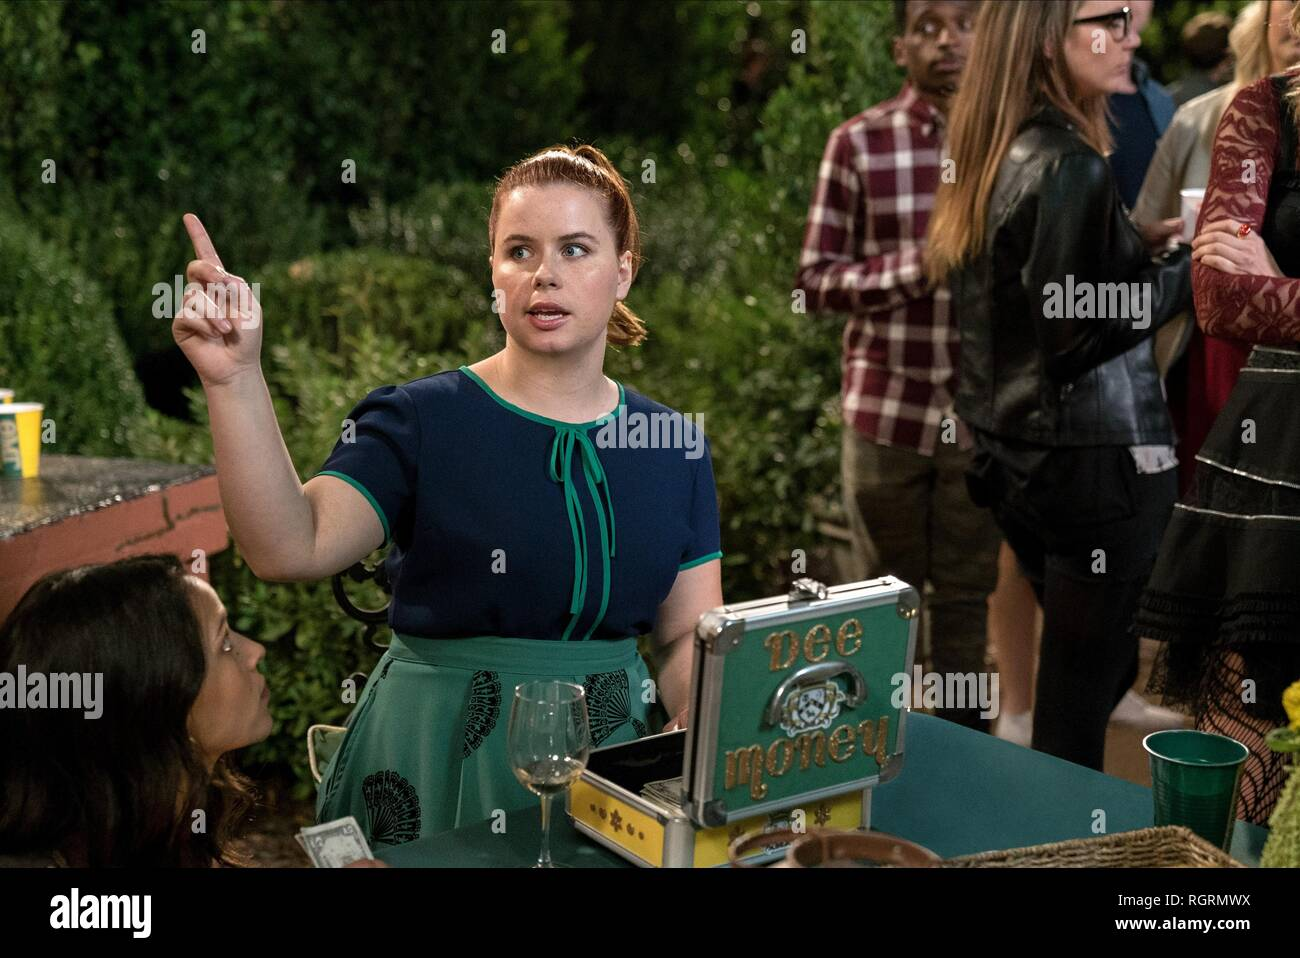 JESSIE ENNIS LIFE OF THE PARTY (2018) - Stock Image